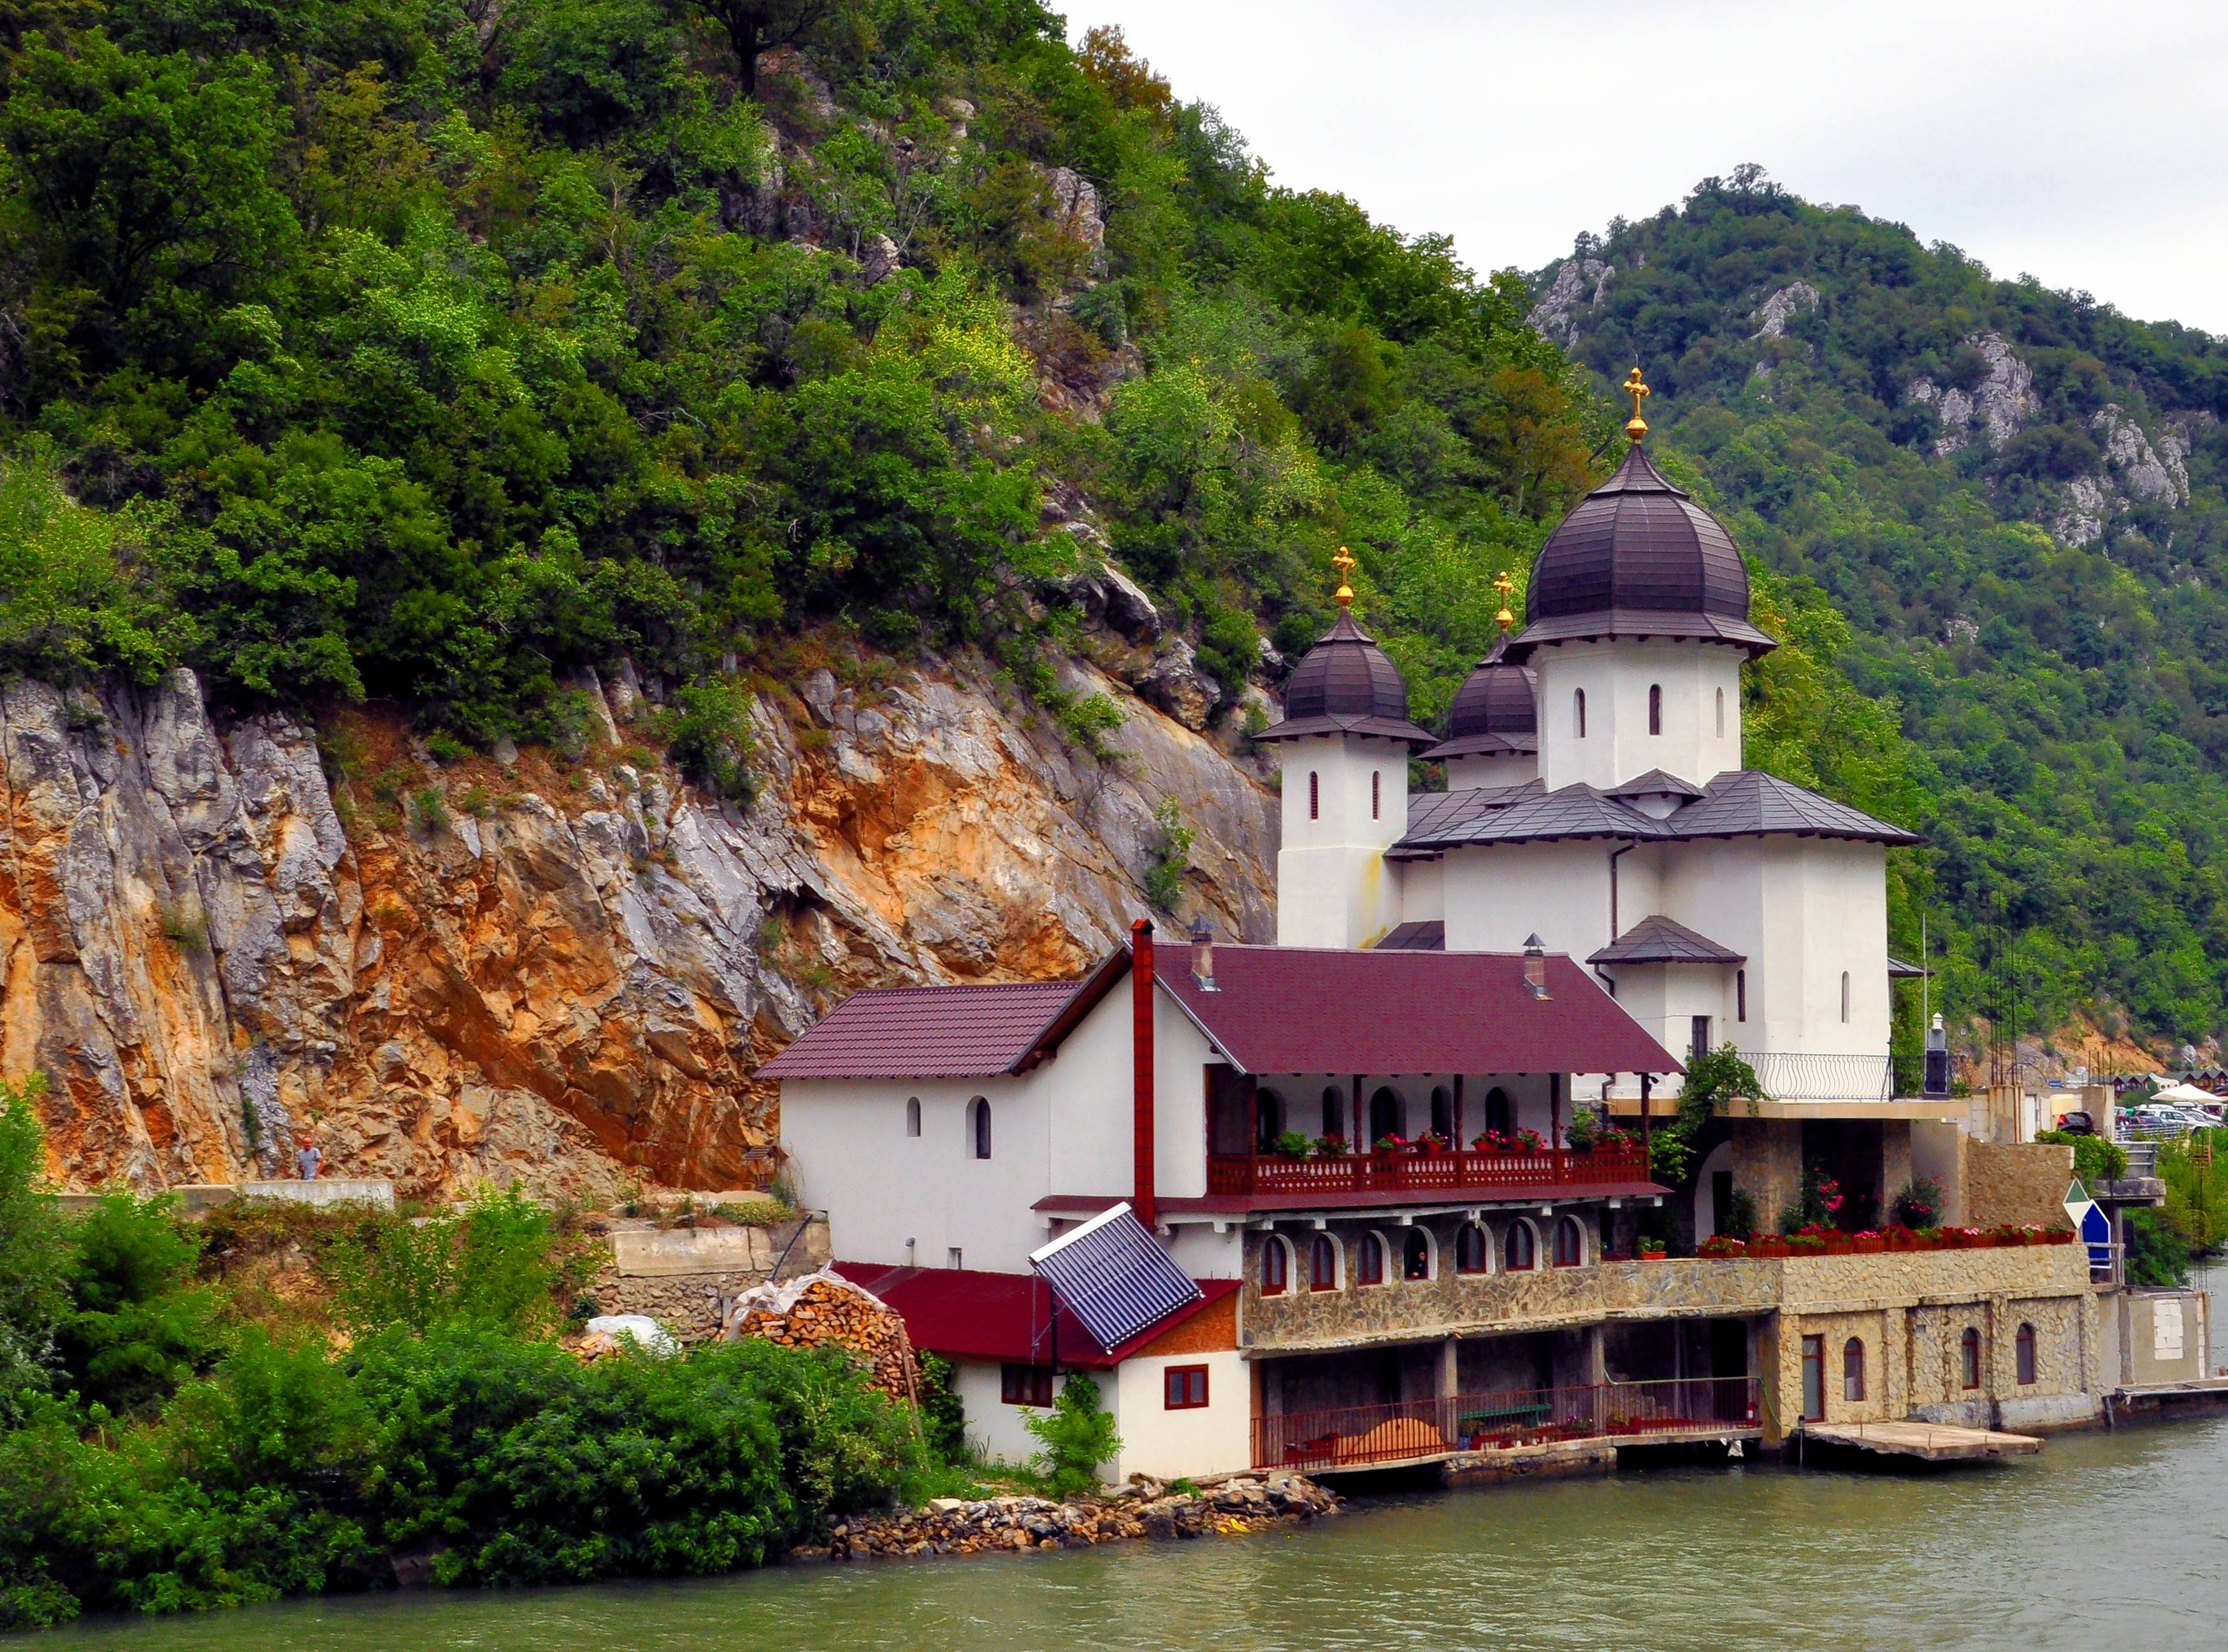 An orthodox convent sits along the Danube on the Romanian side of the Iron Gates gorge.